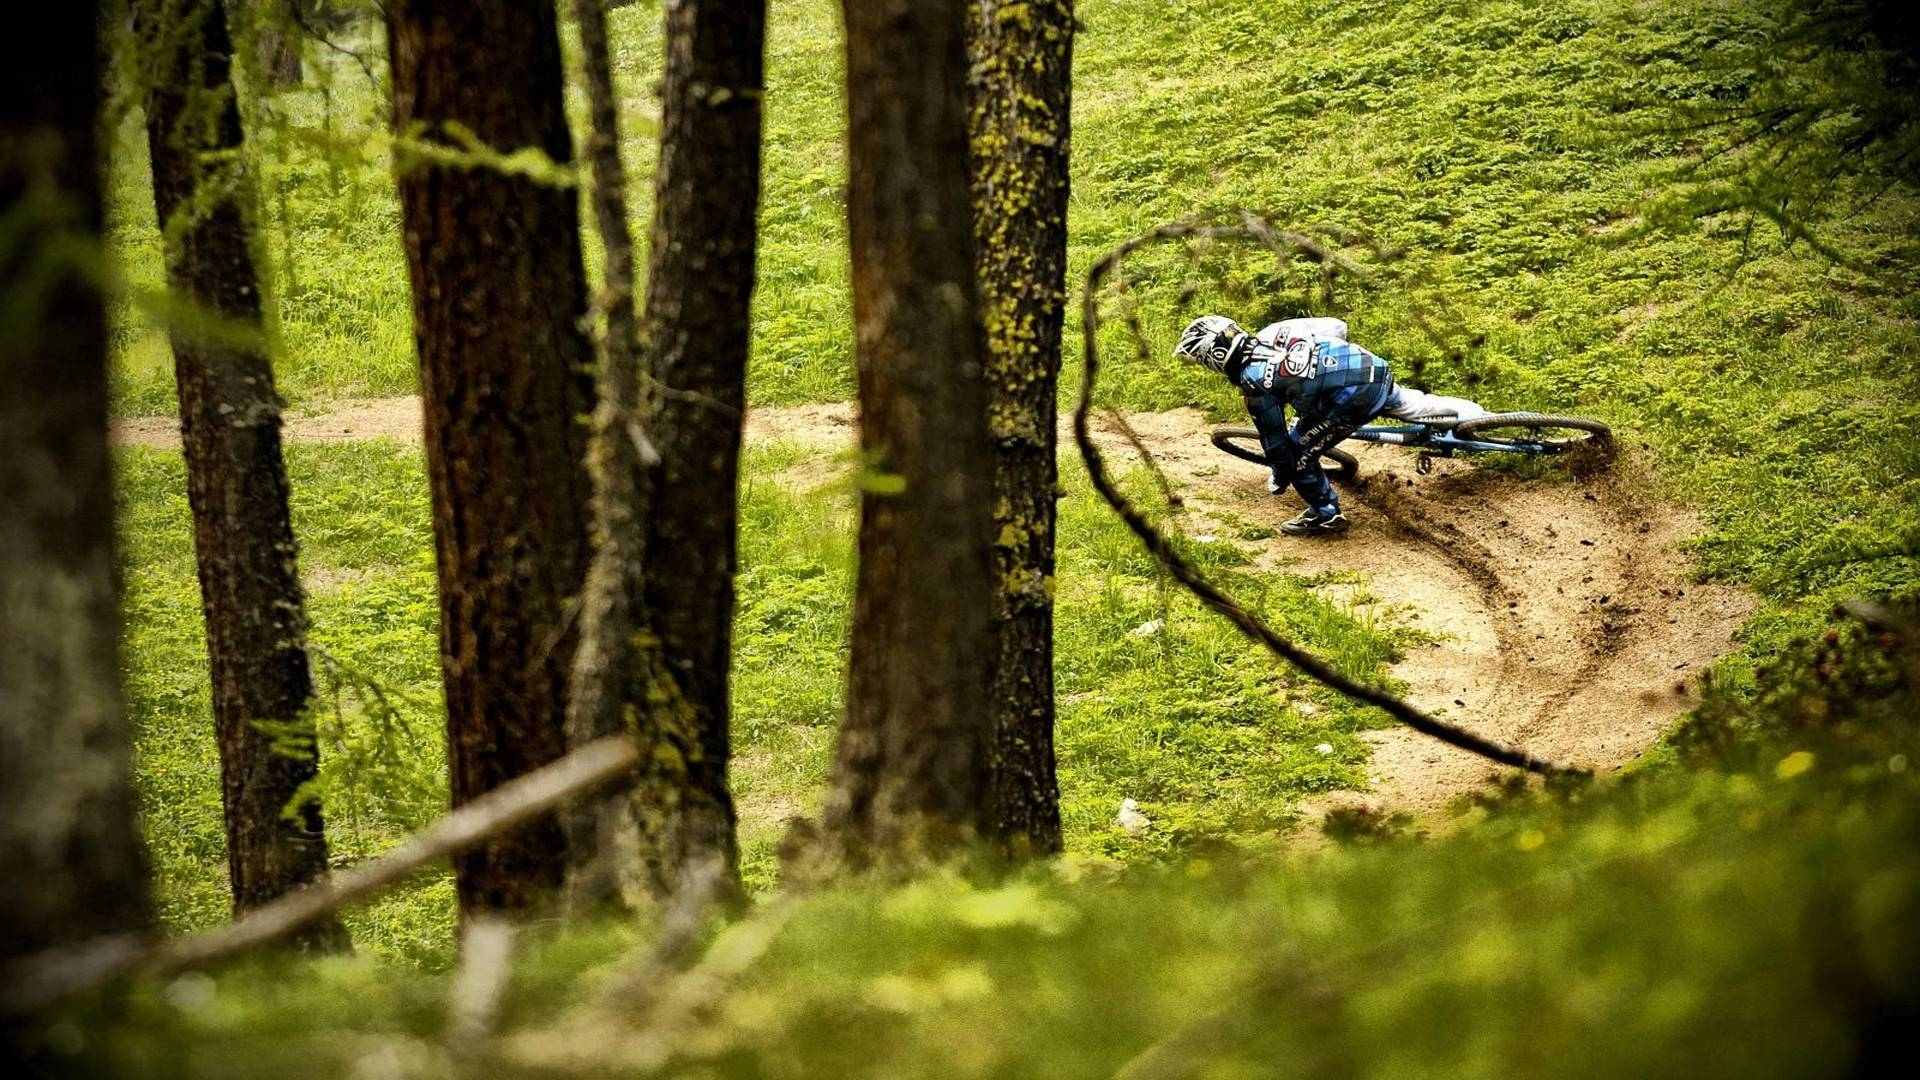 mountain biking high definition wallpaper 09289 - baltana